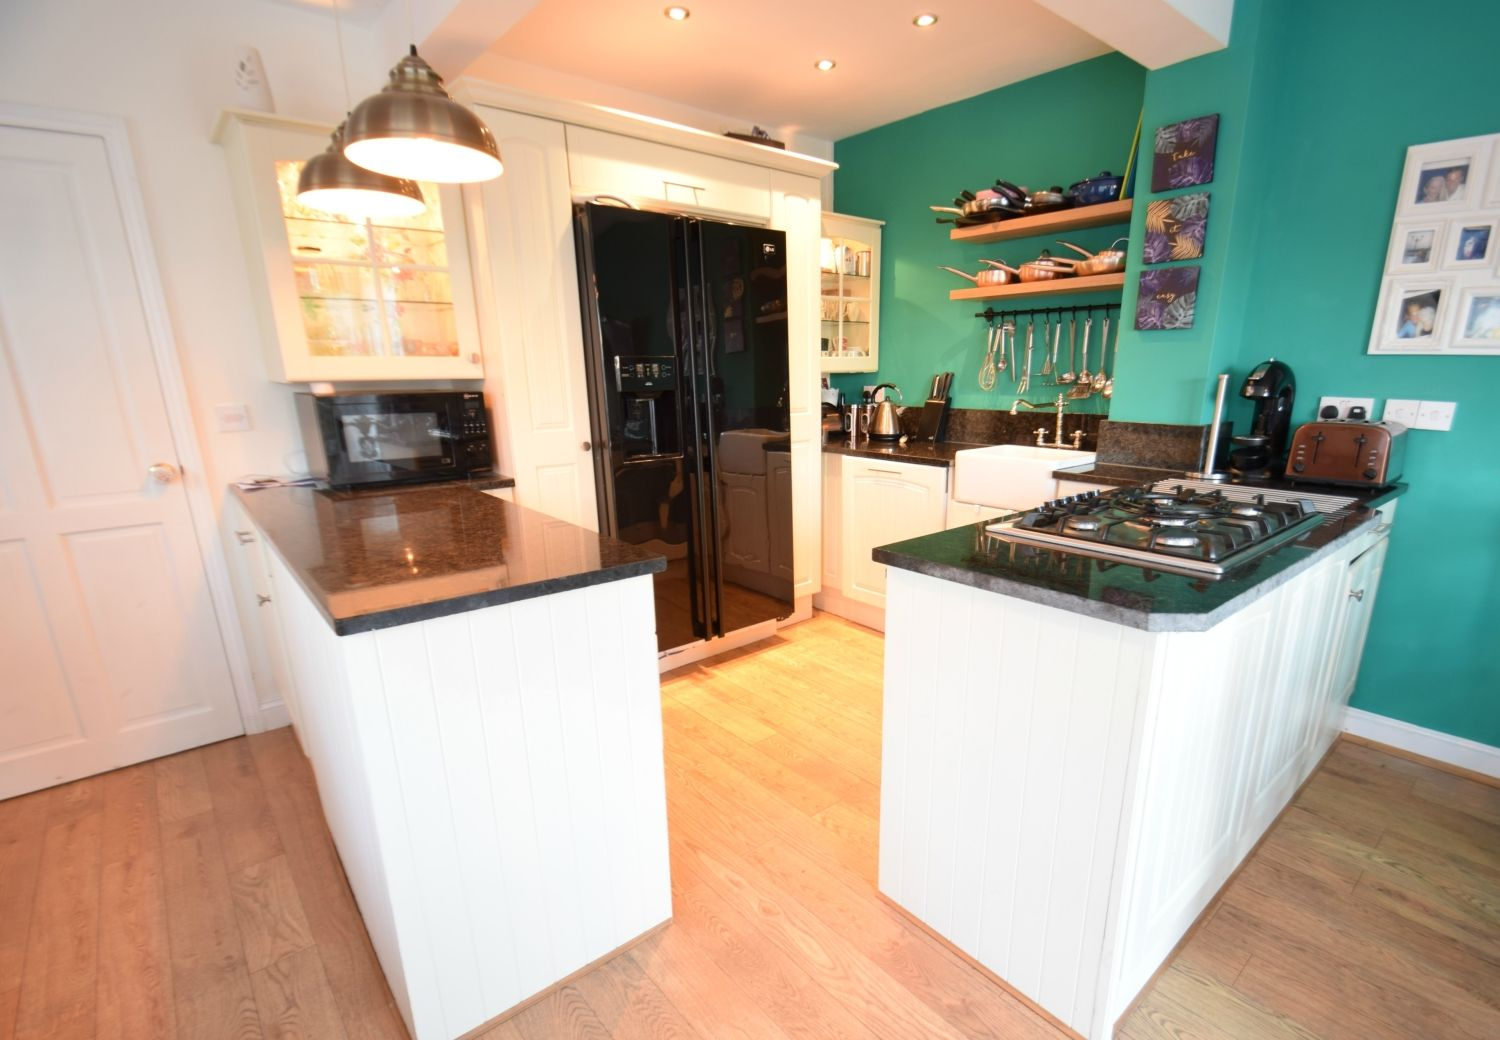 4 bed semi-detached for sale in Upland Grove, Bromsgrove, B61 2